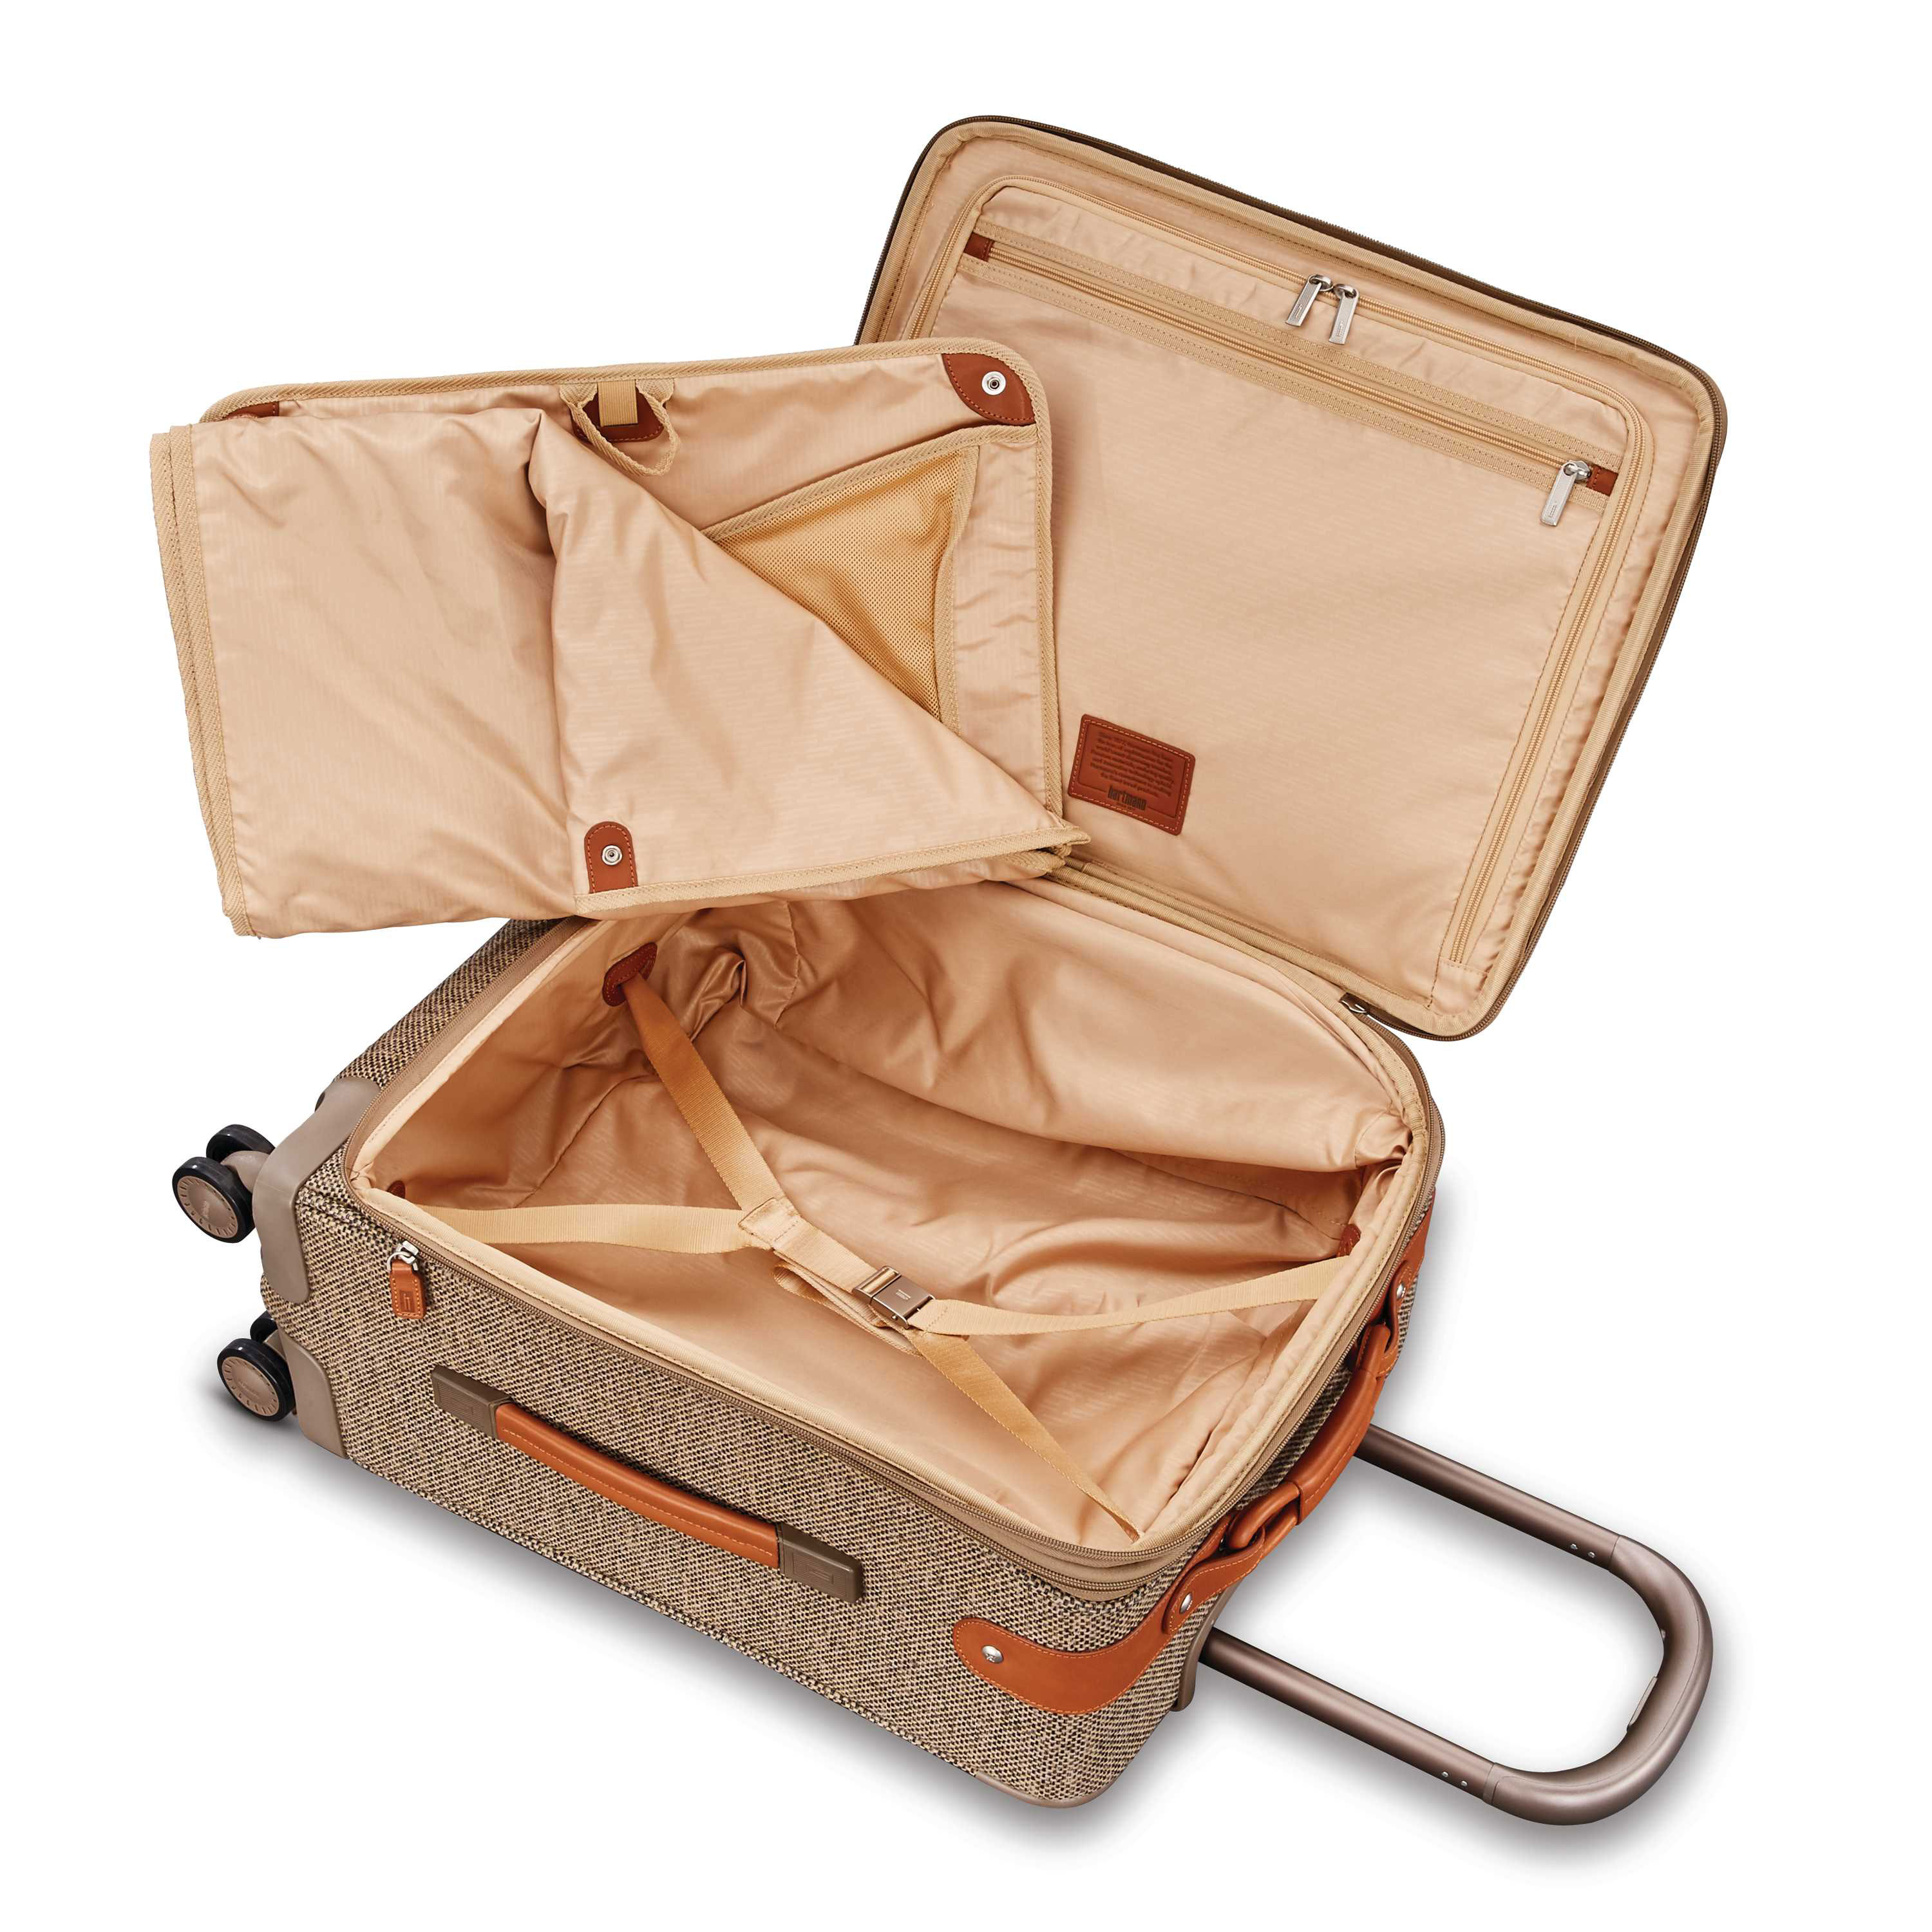 049974d9d5 Hartmann Tweed Legend Extended Journey Expandable Spinner in the color  Natural Tweed.